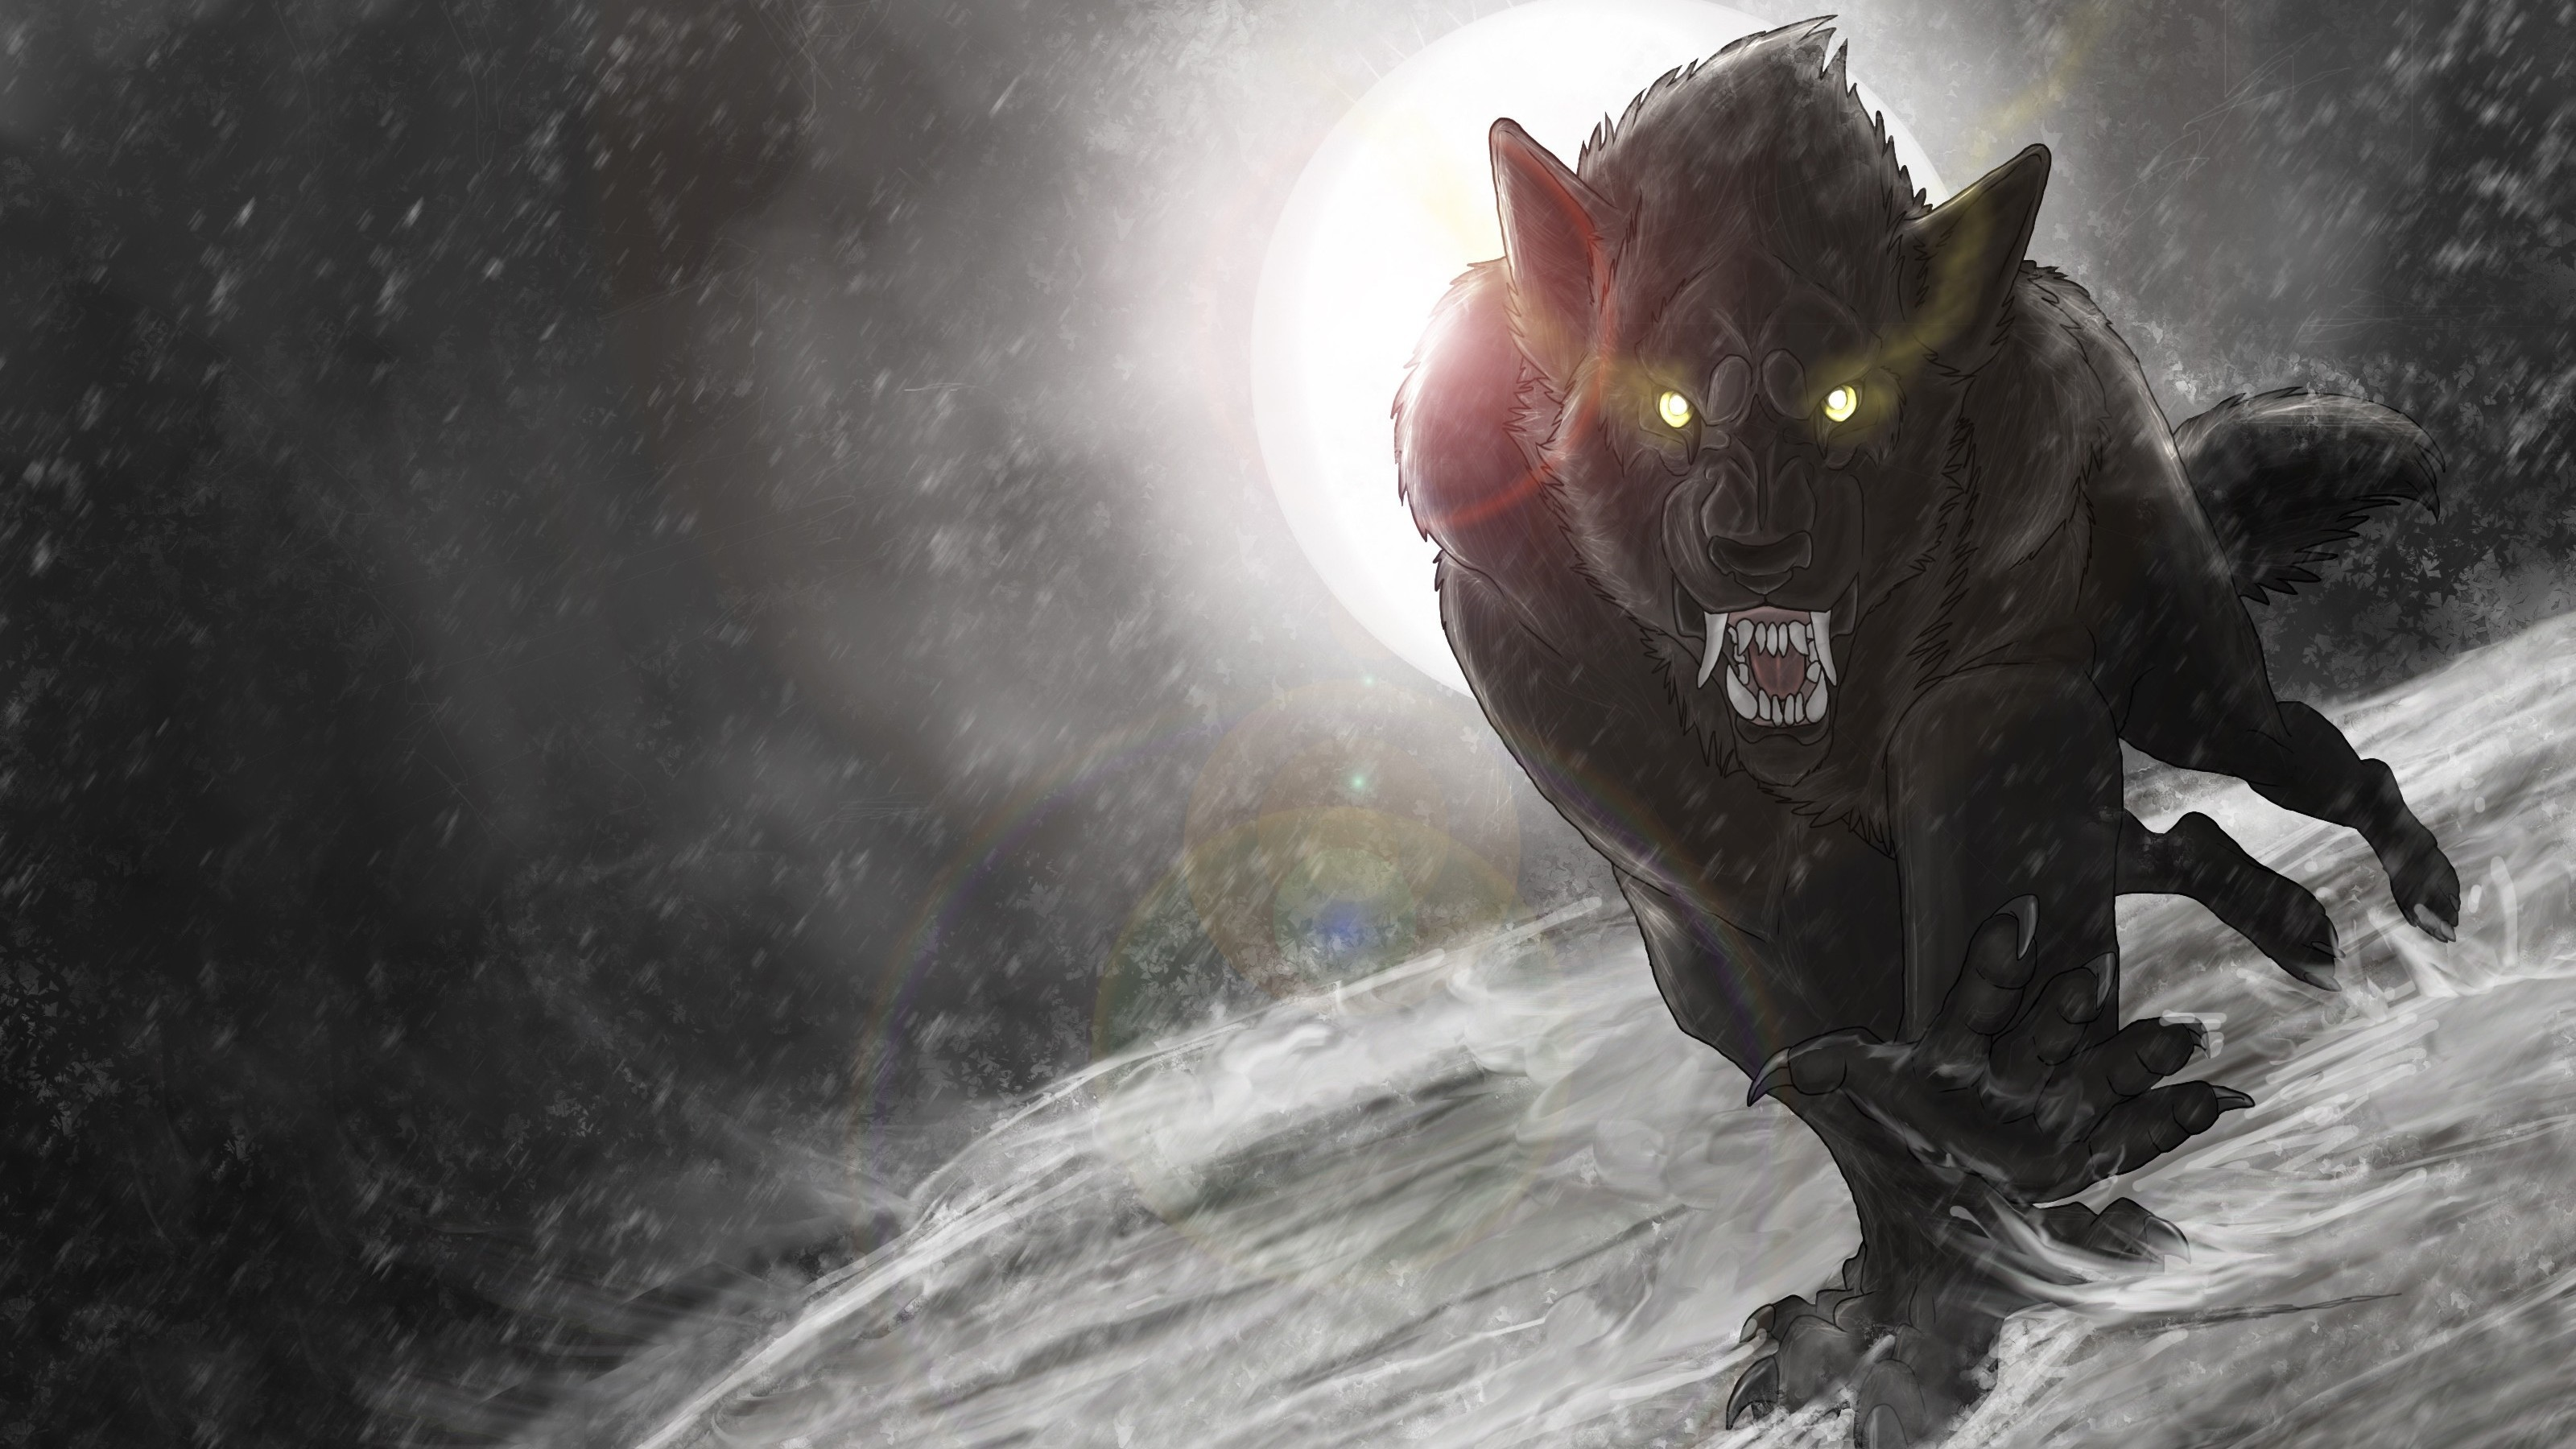 3200x1800  Nocturnal Clash wallpaper from Werewolf wallpapers Evil | HD  Wallpapers | Pinterest | Werewolves and Wallpaper